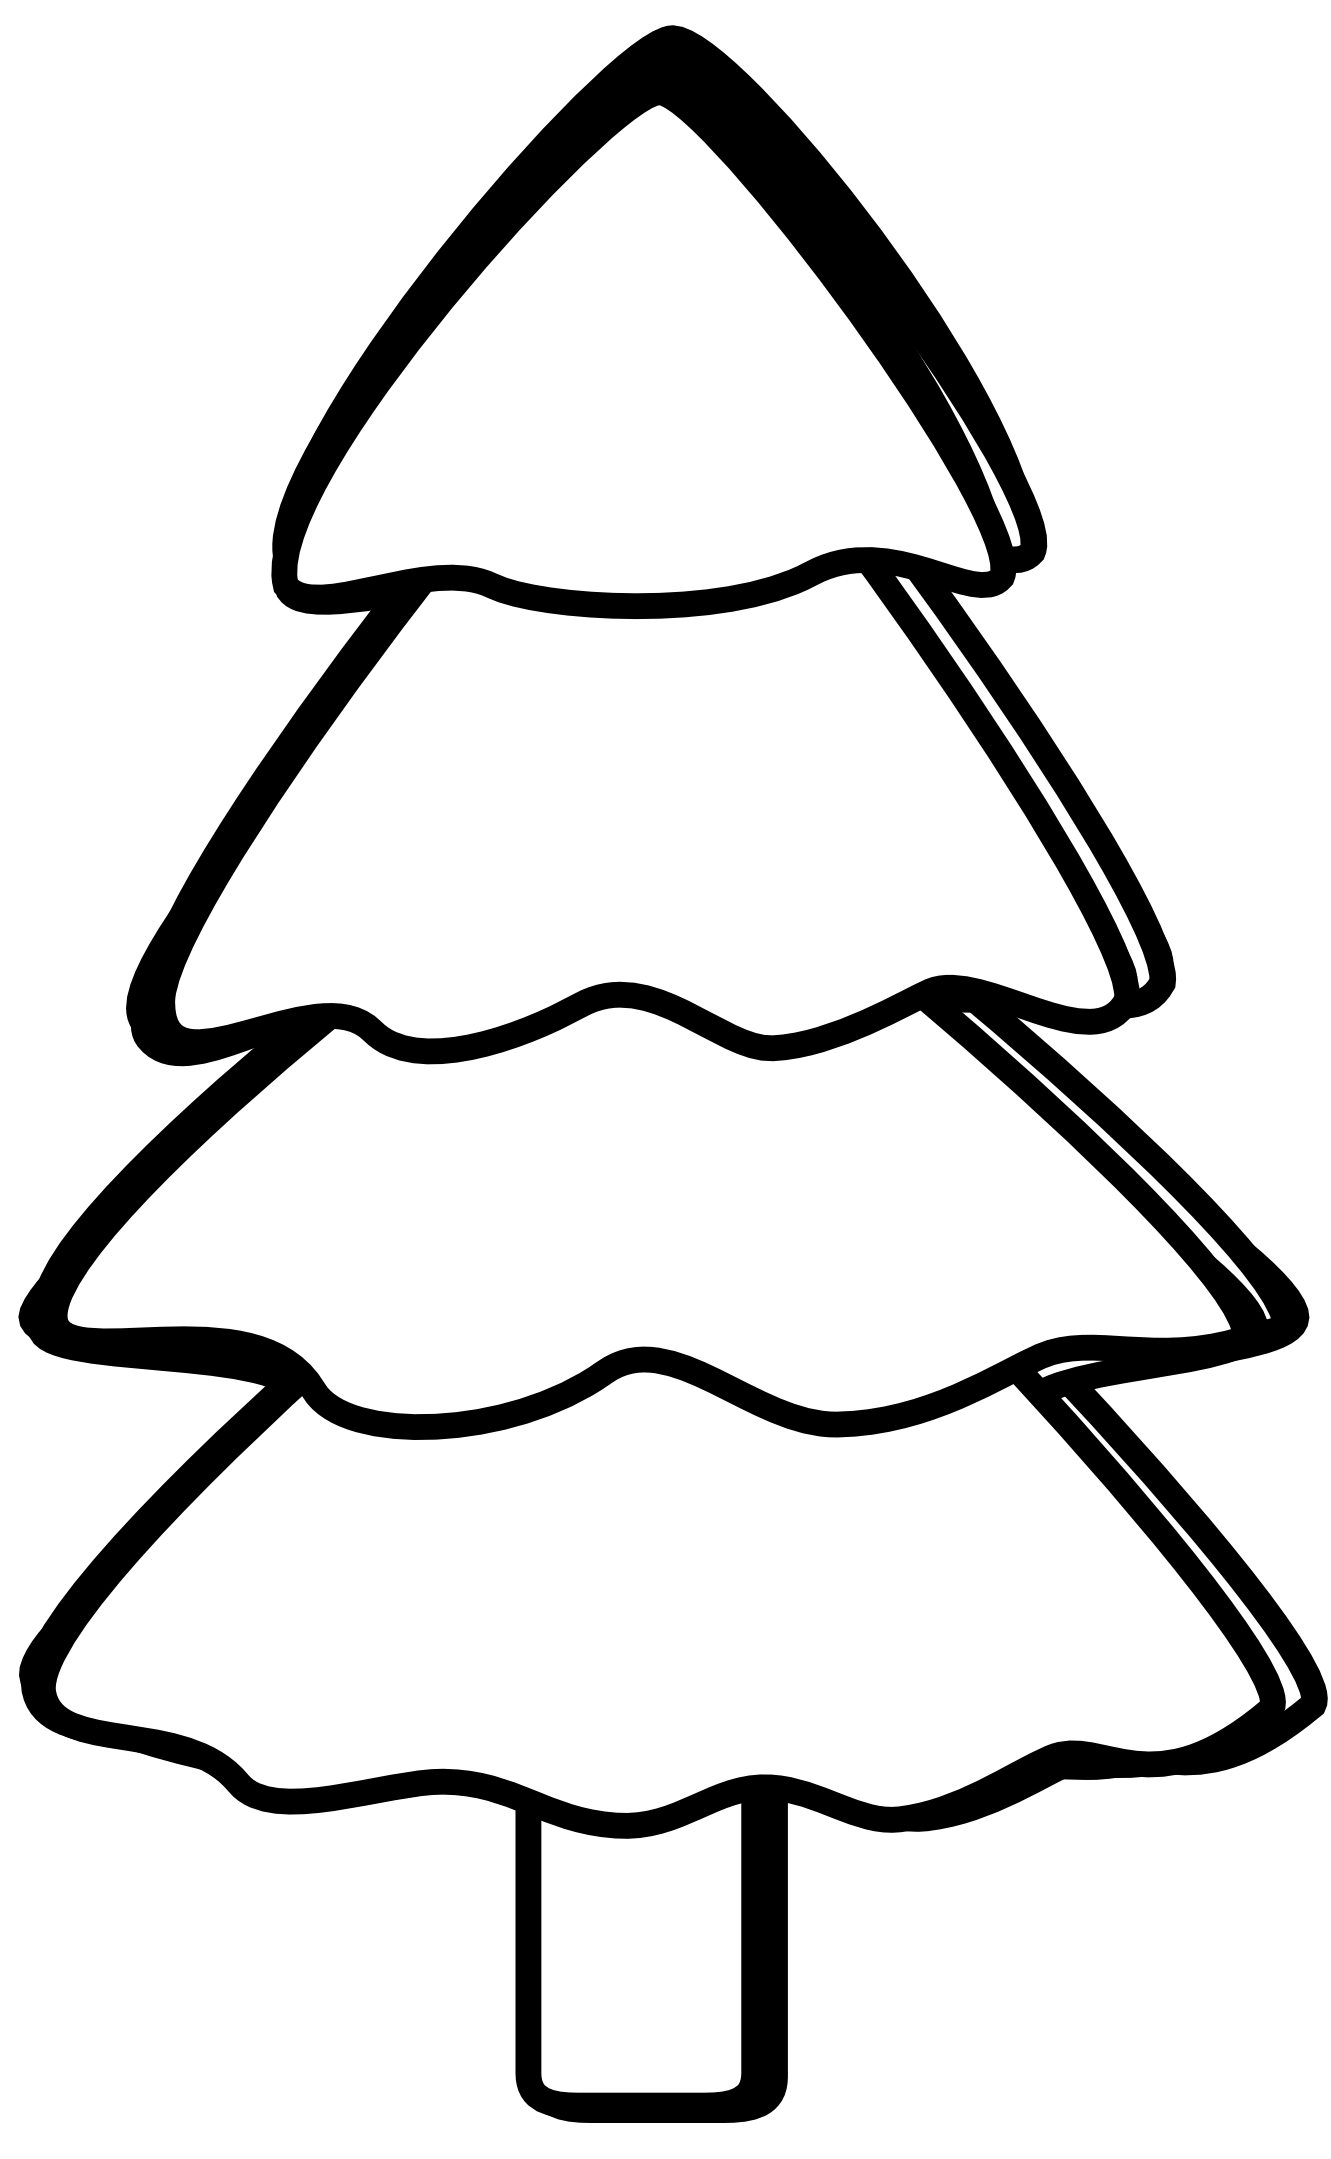 Google clipart black and white. Christmas tree clip art